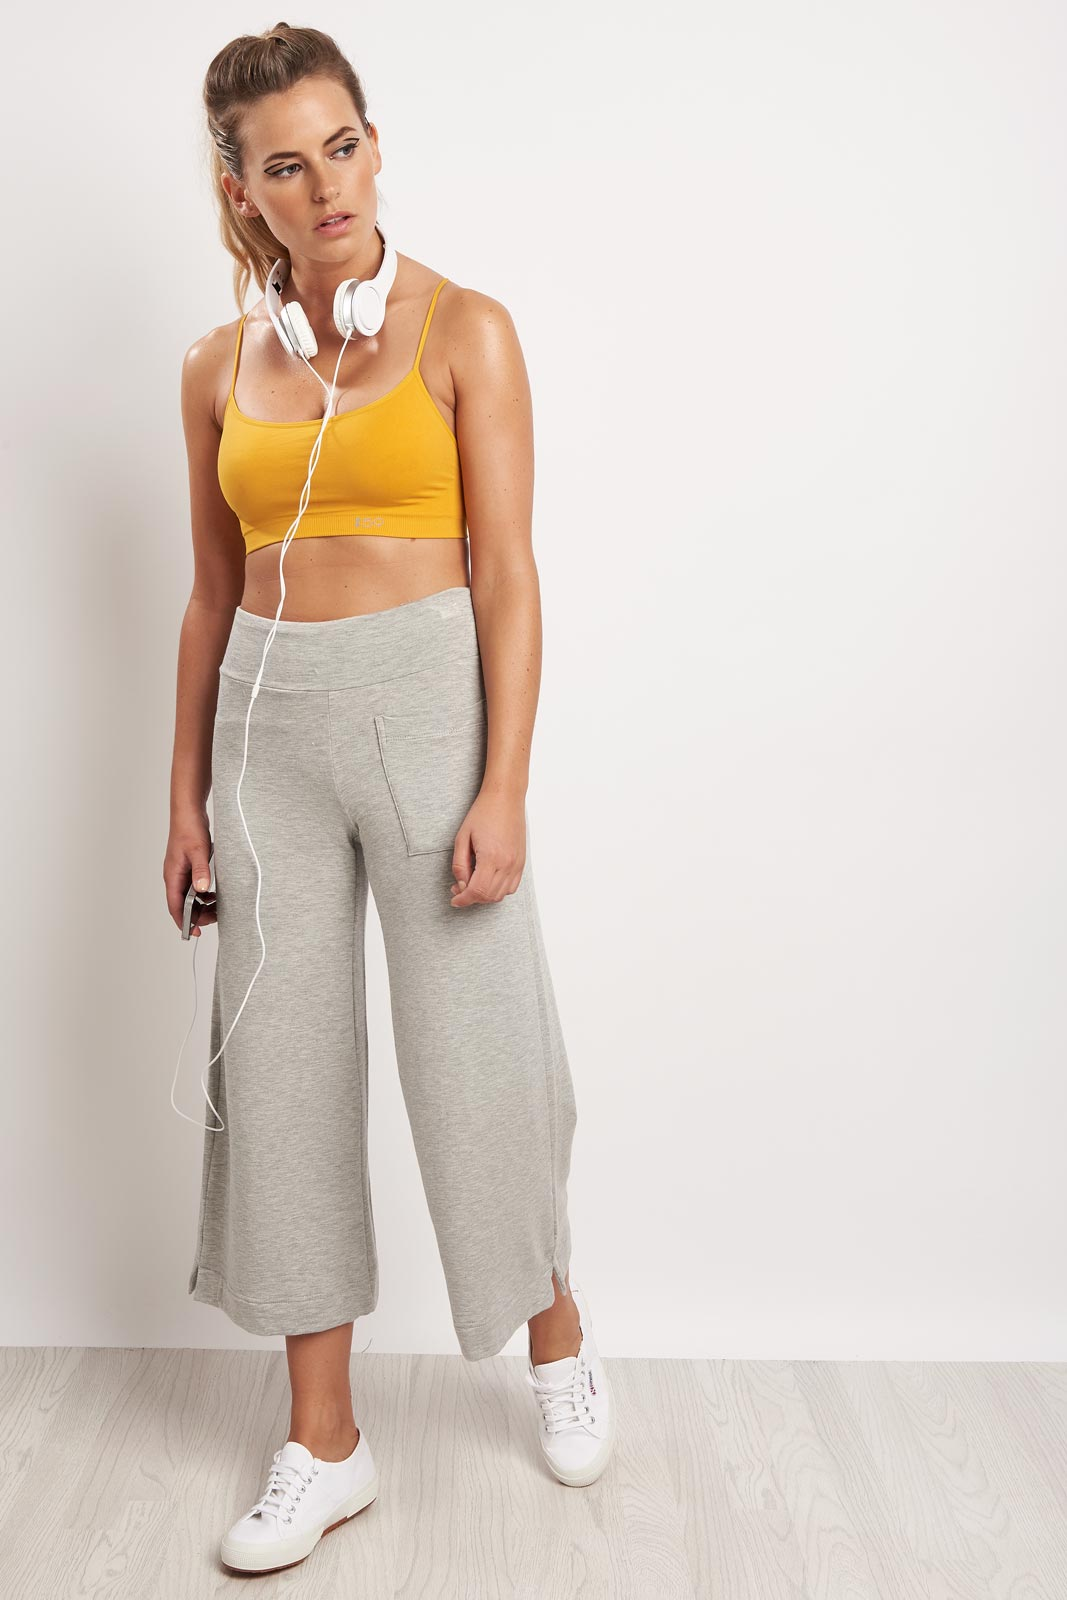 Splits59 Runway Culotte Sweat Grey image 4 - The Sports Edit